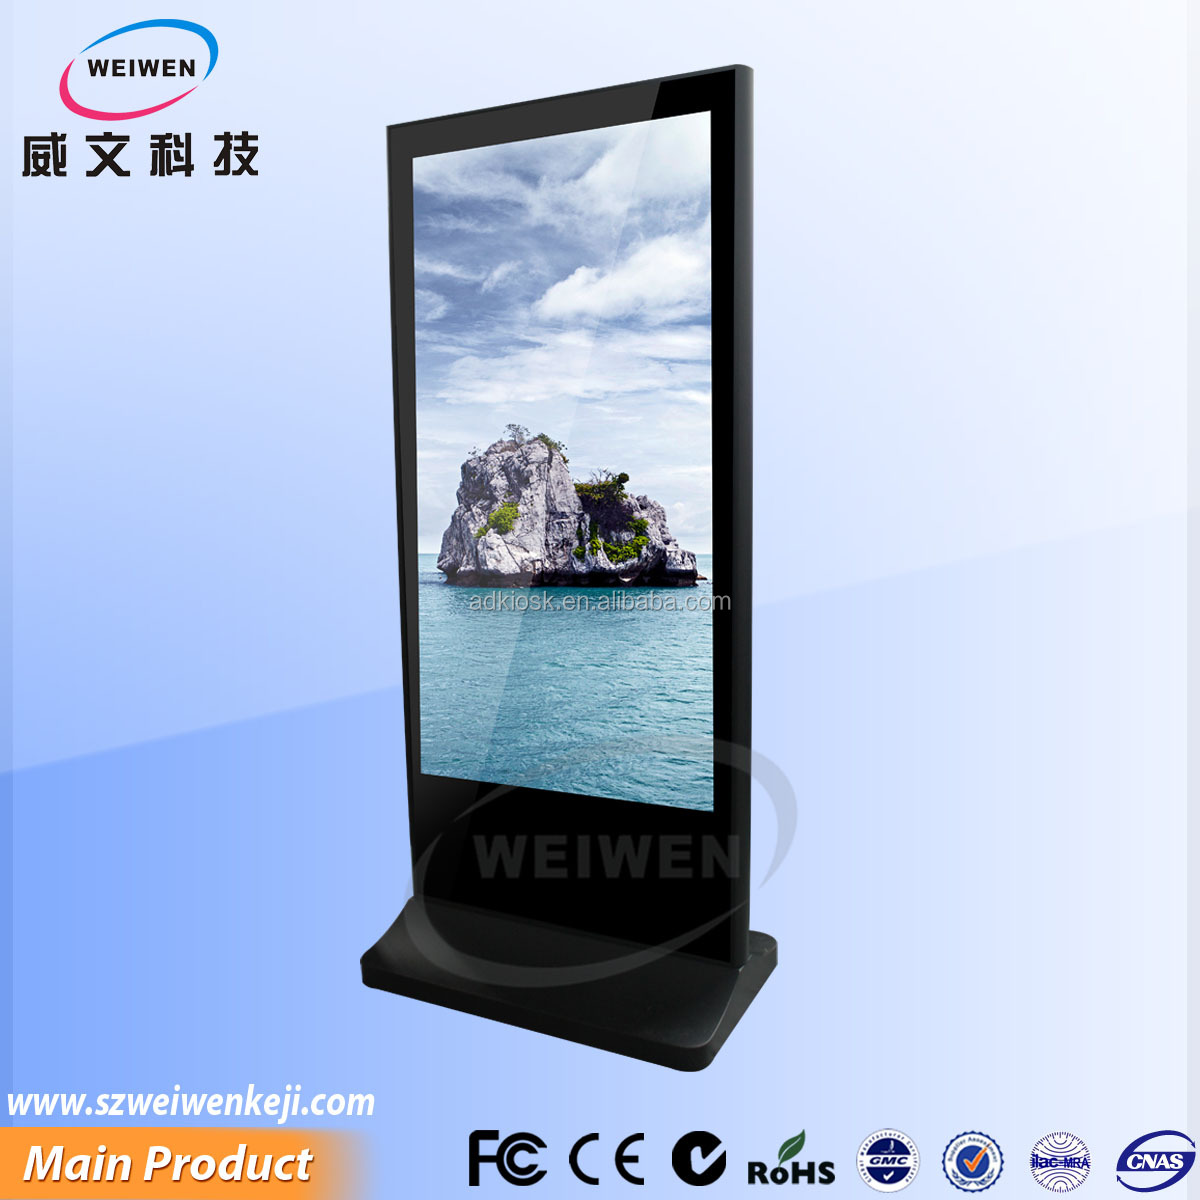 2014 hot sale high quality 42 inch ipad touch screen free standing kiosk